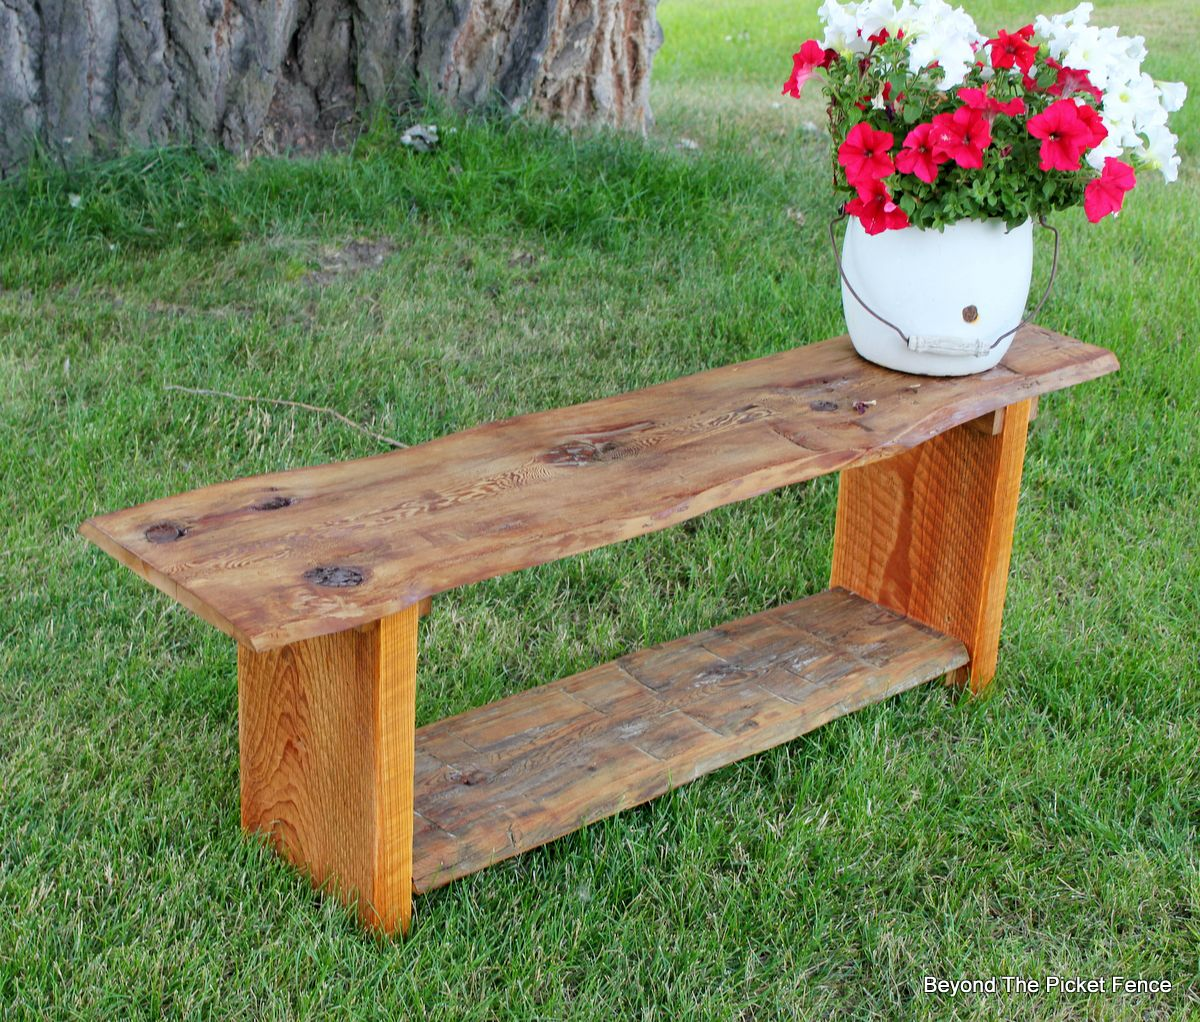 Beyond The Picket Fence: Reclaimed, Live Edge Wood Bench